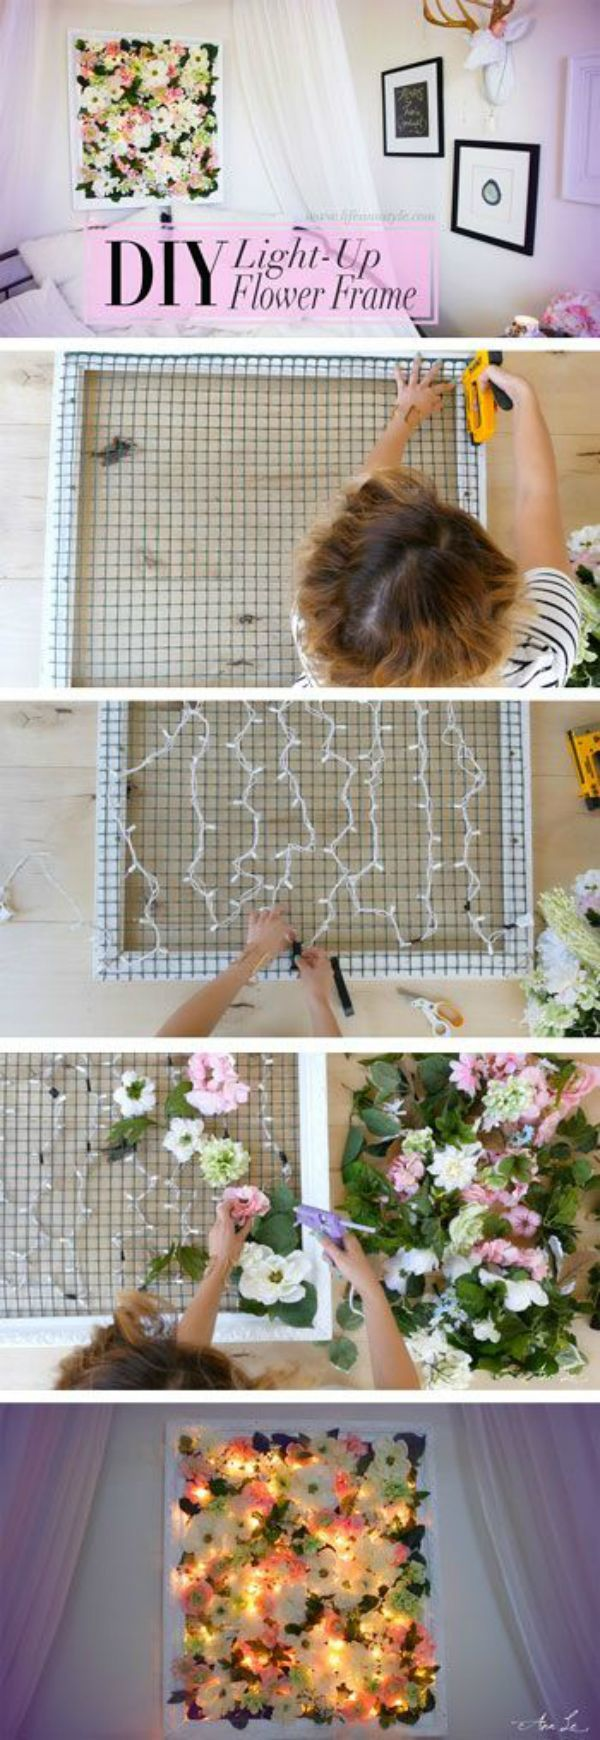 Cheap Bedroom Decor Ideas: DIY Light-Up Flower Frame…